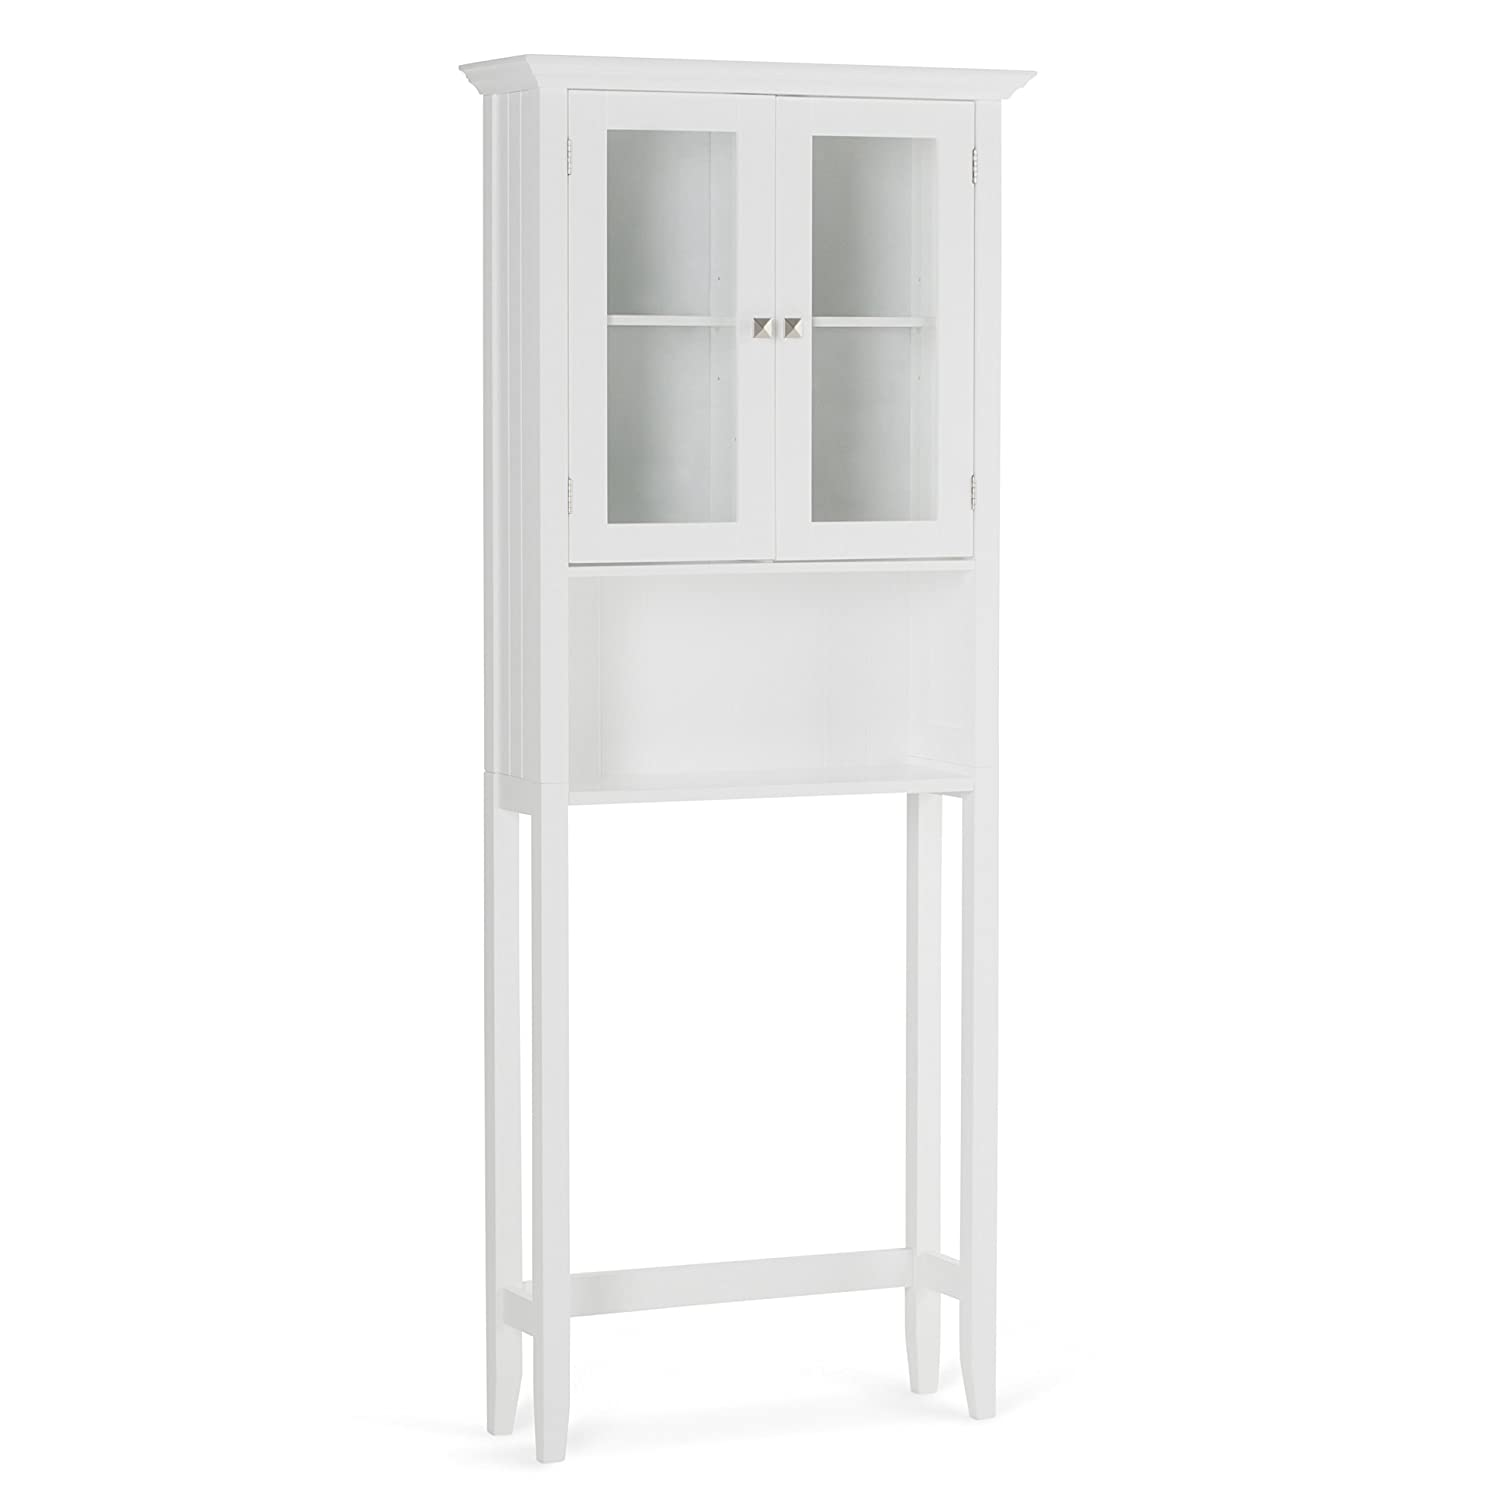 Simpli Home Acadian Space Saver Cabinet, White AXCBCACA-06